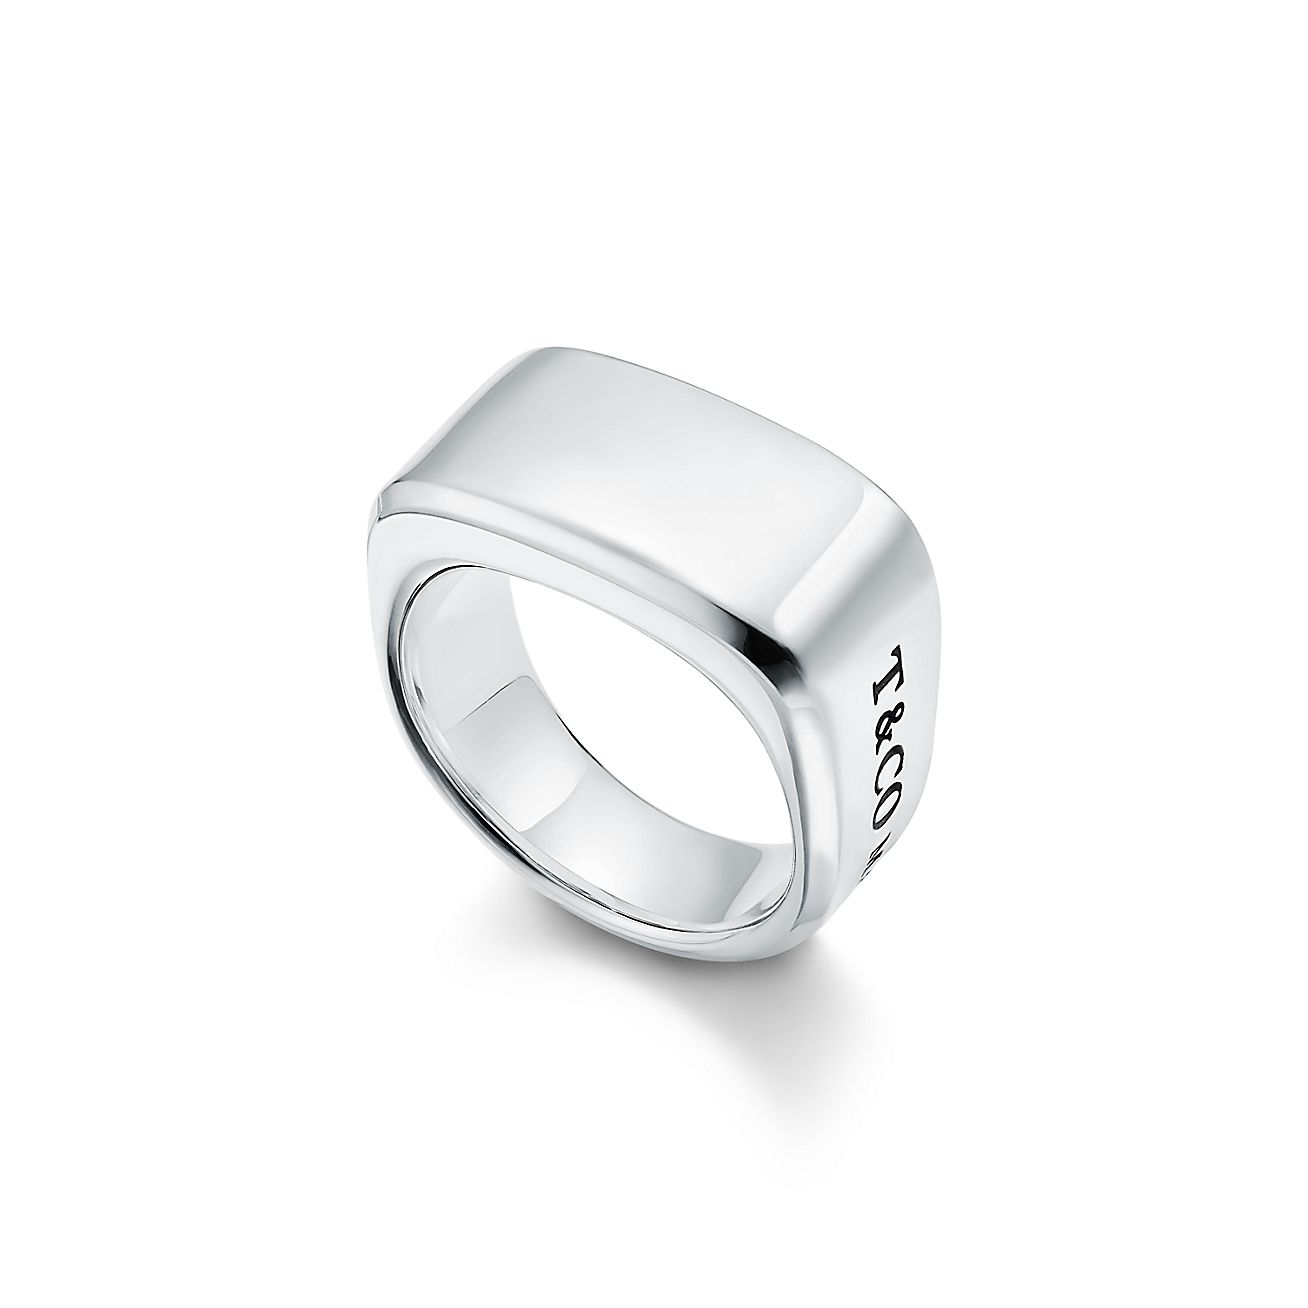 Tiffany 1837 Makers Signet Ring In Sterling Silver 12 Mm Wide Tiffany Co